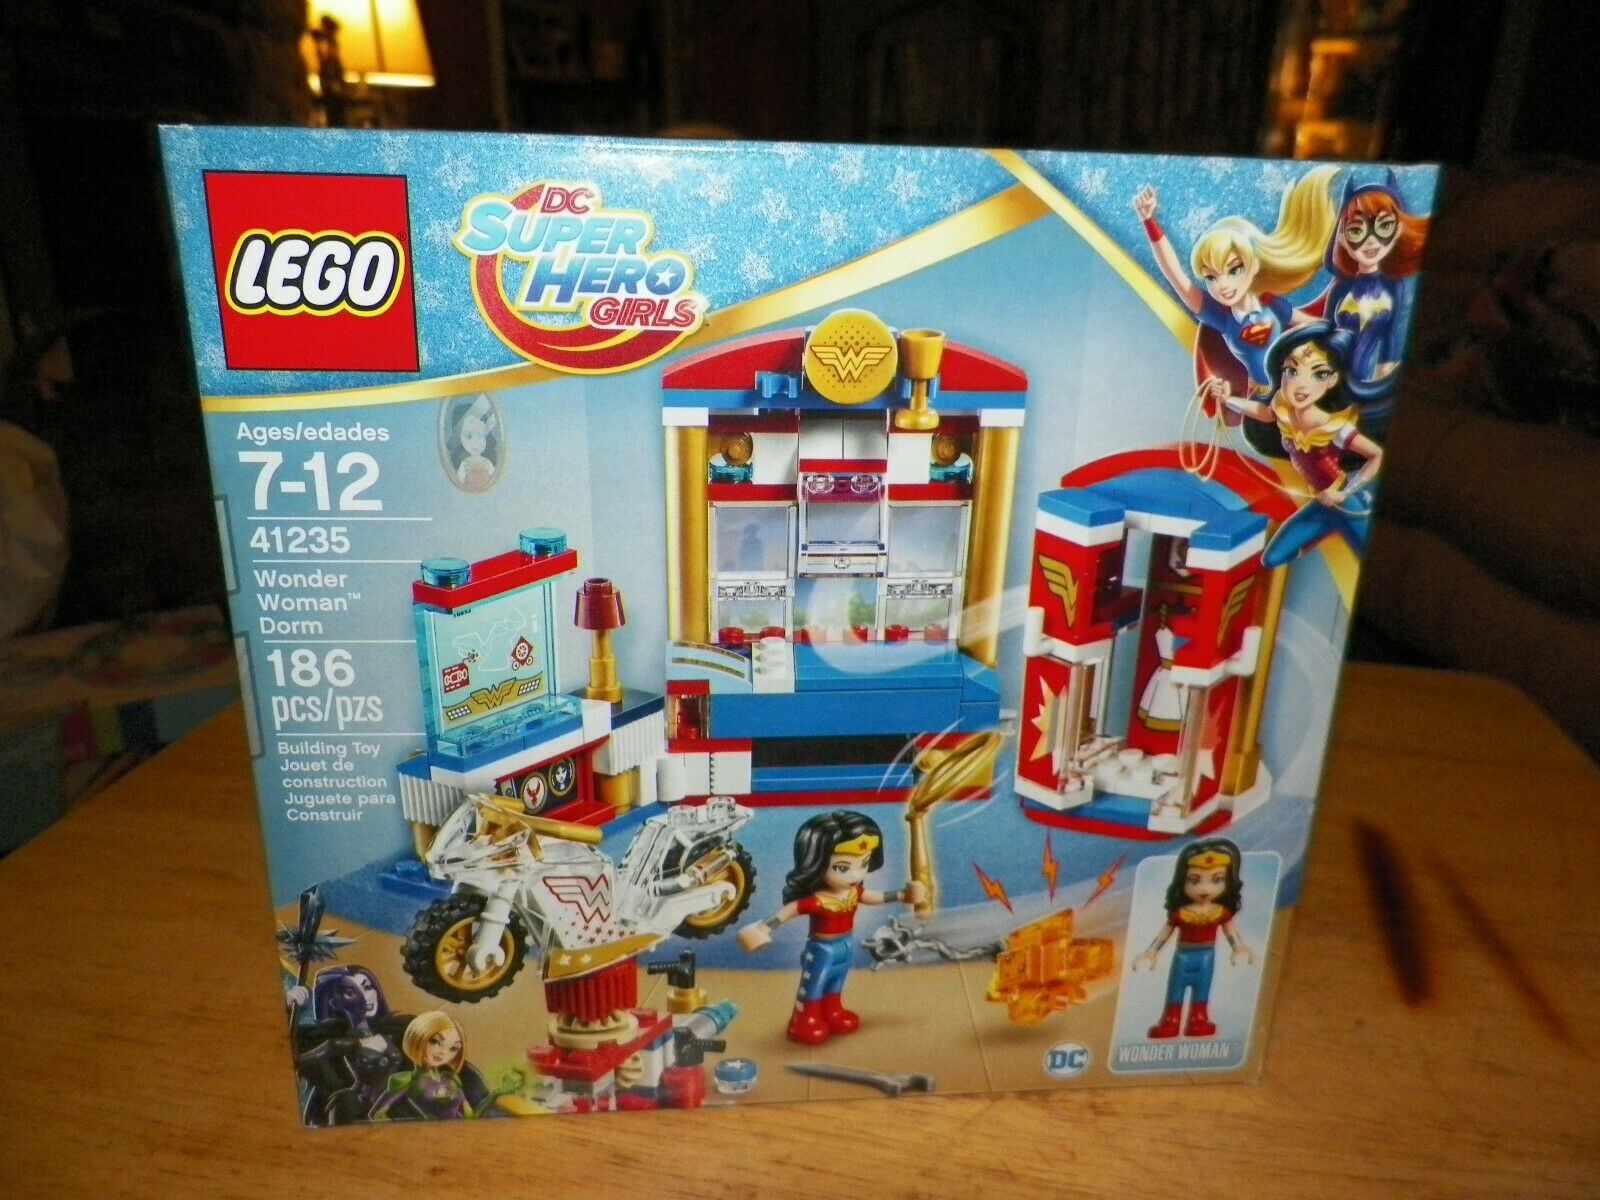 Genuine Minifig from Set 41235 Doll Wonder Woman LEGO Minifigure with Lasso